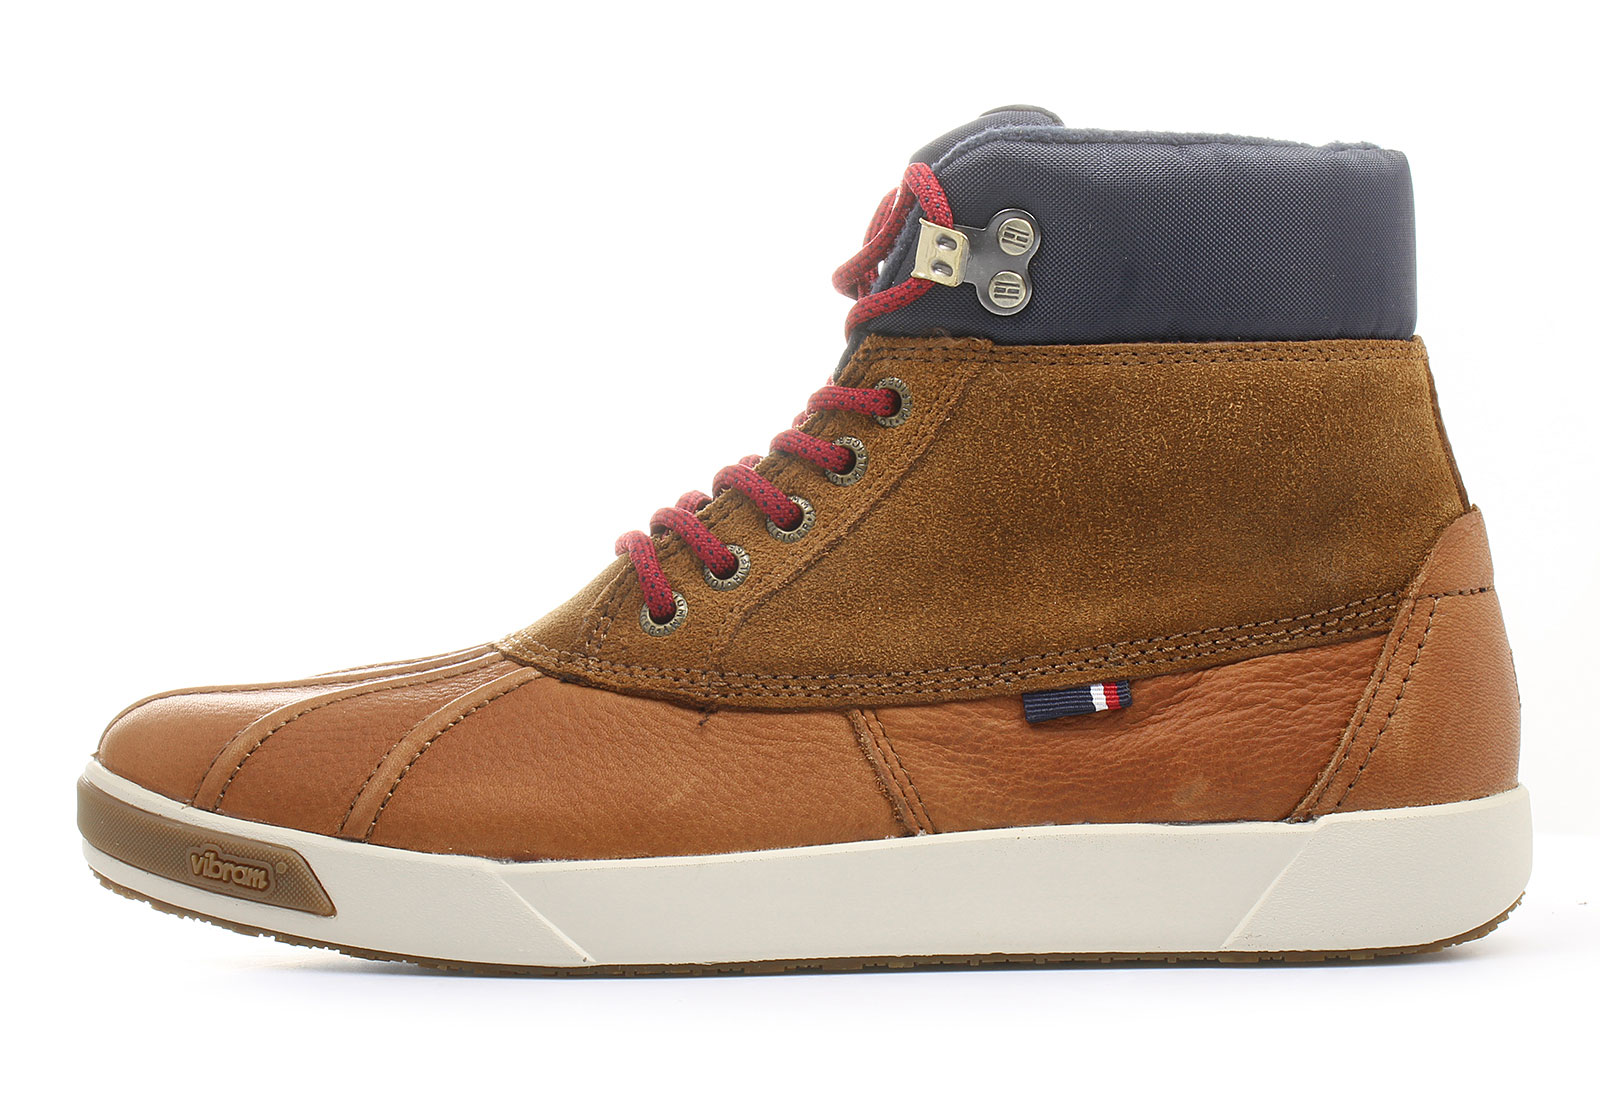 tommy hilfiger shoes maverick 4a2 16f 1675 906 online shop for sneakers shoes and boots. Black Bedroom Furniture Sets. Home Design Ideas